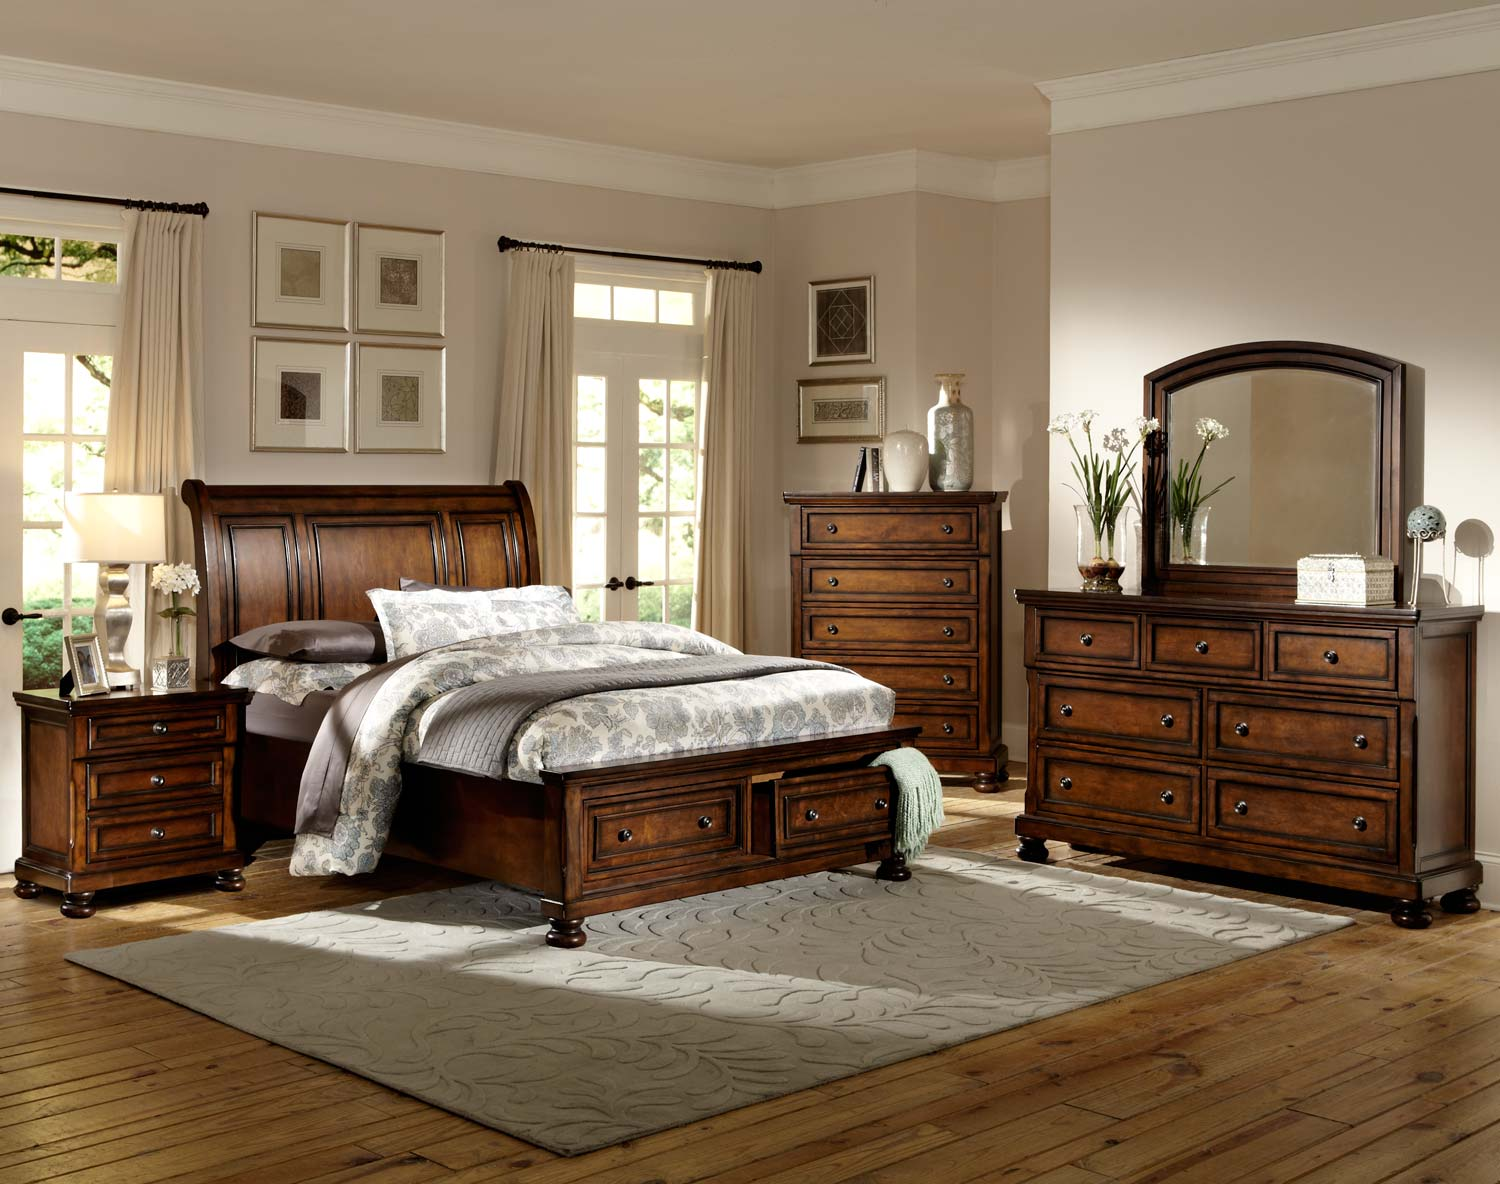 Homelegance Cumberland Platform Bedroom Set - Brown Cherry